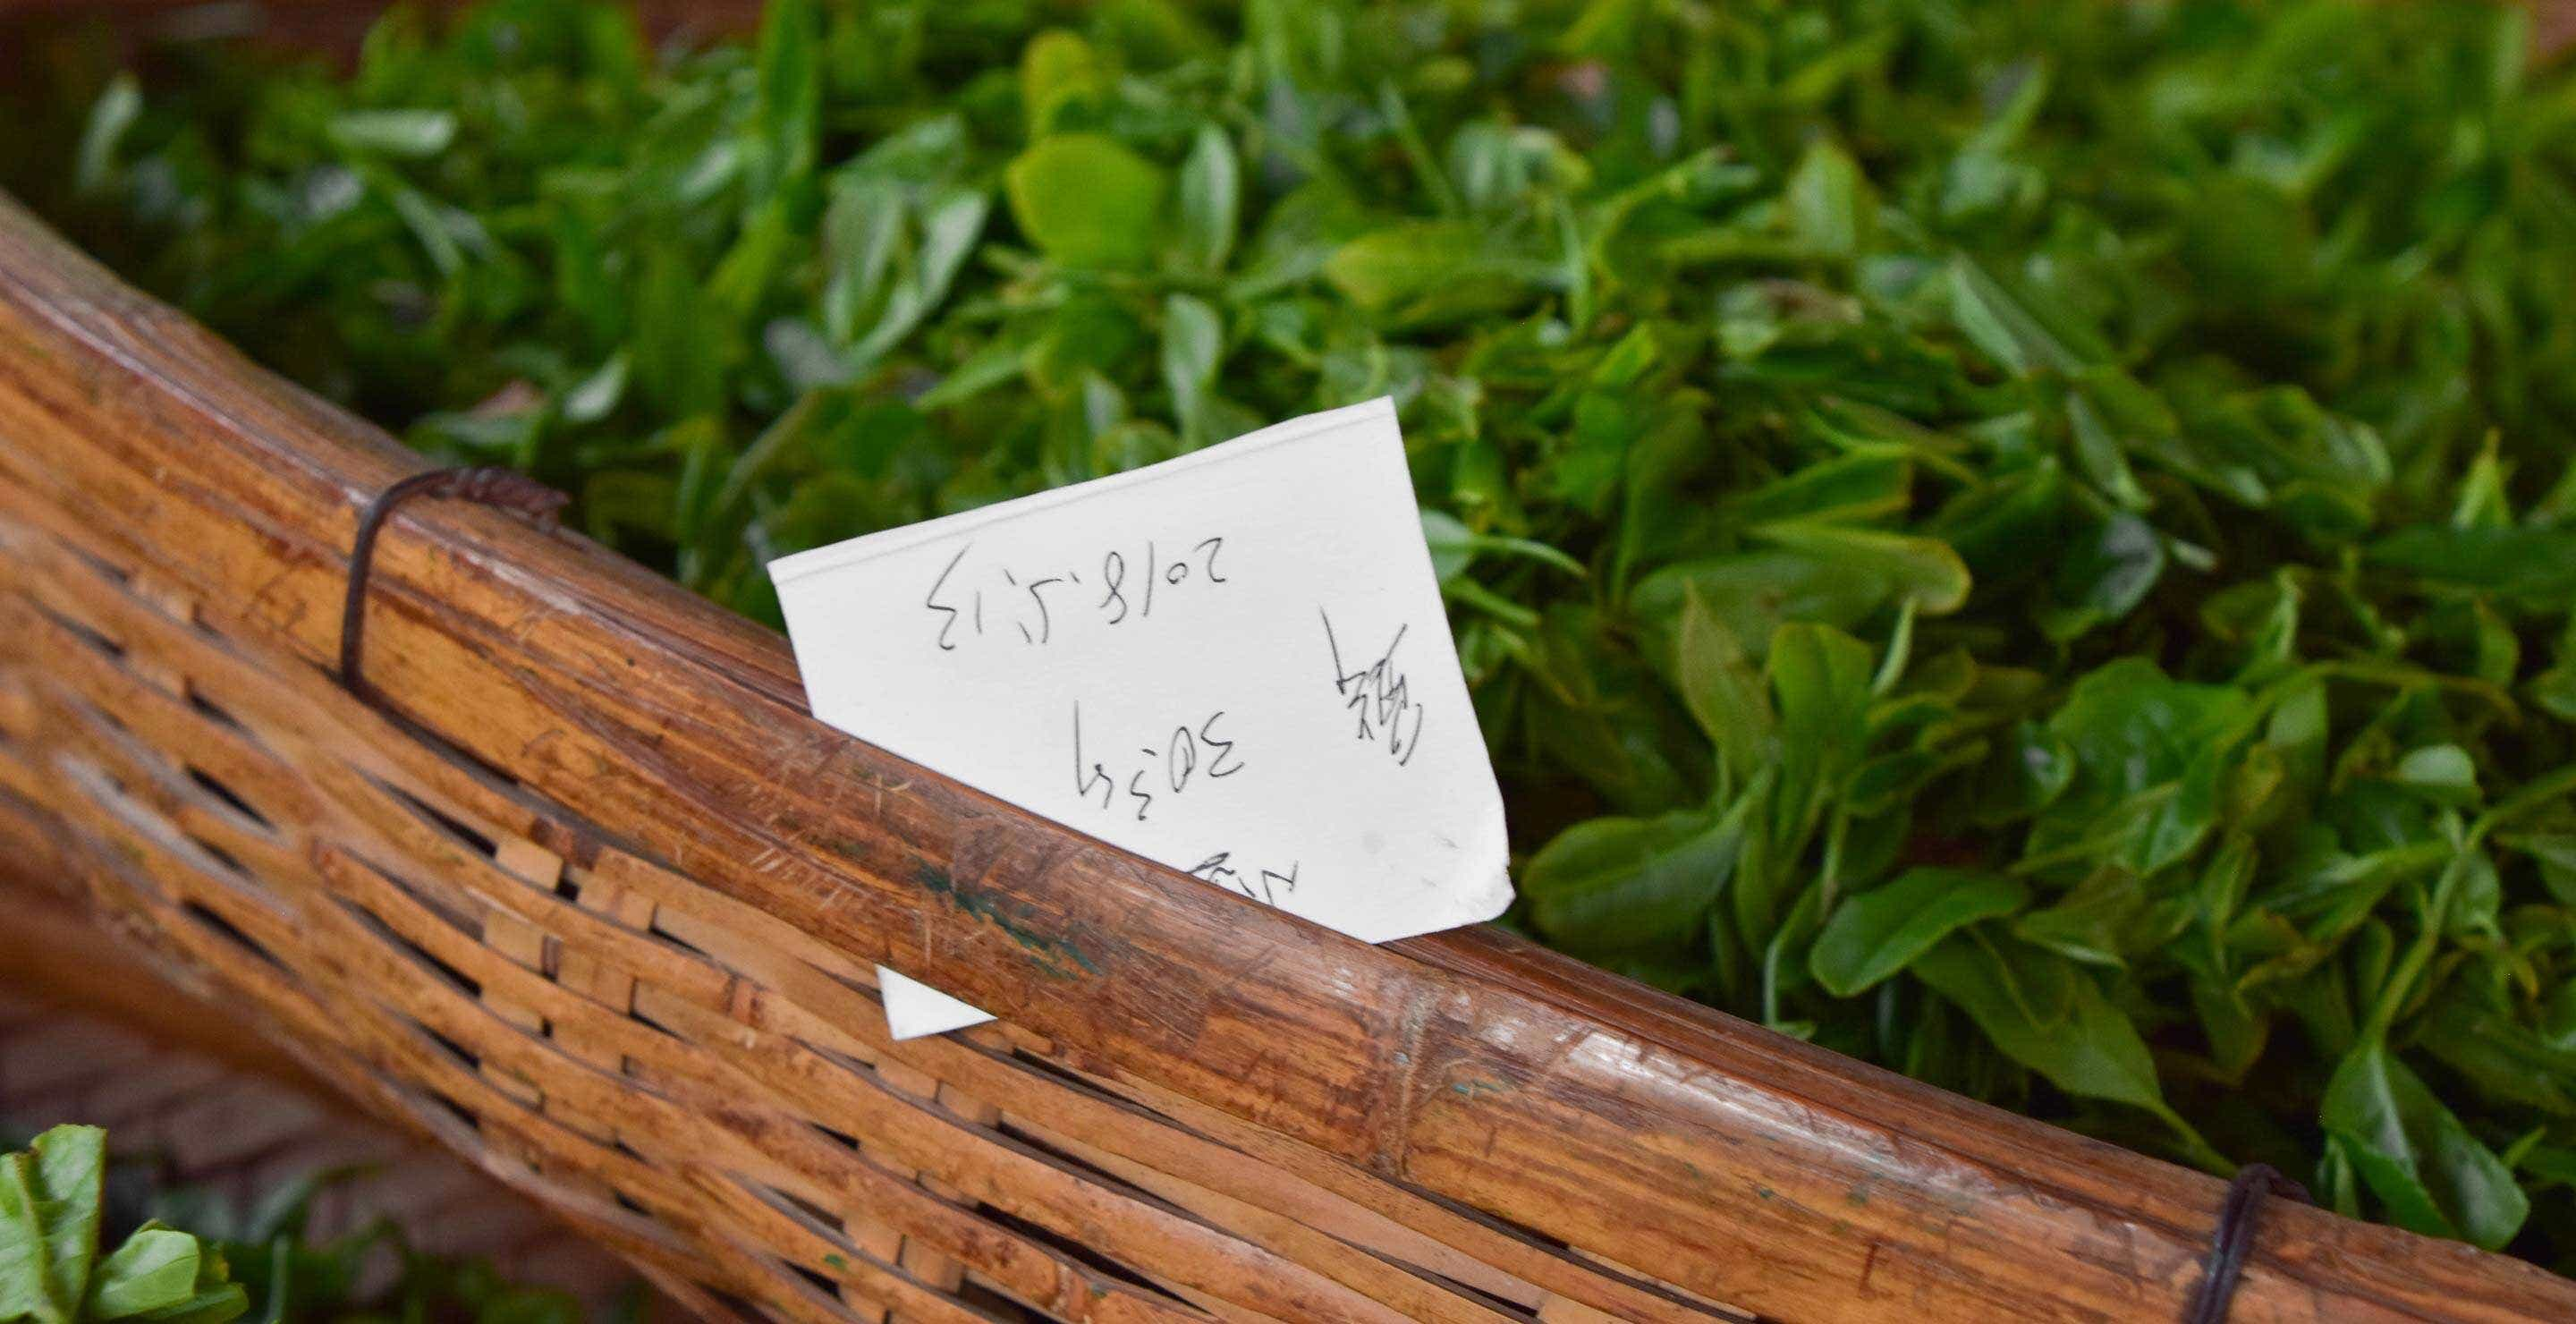 the He Family uses hand written cards to track batches of tea that they finish for their neighbors and extended family